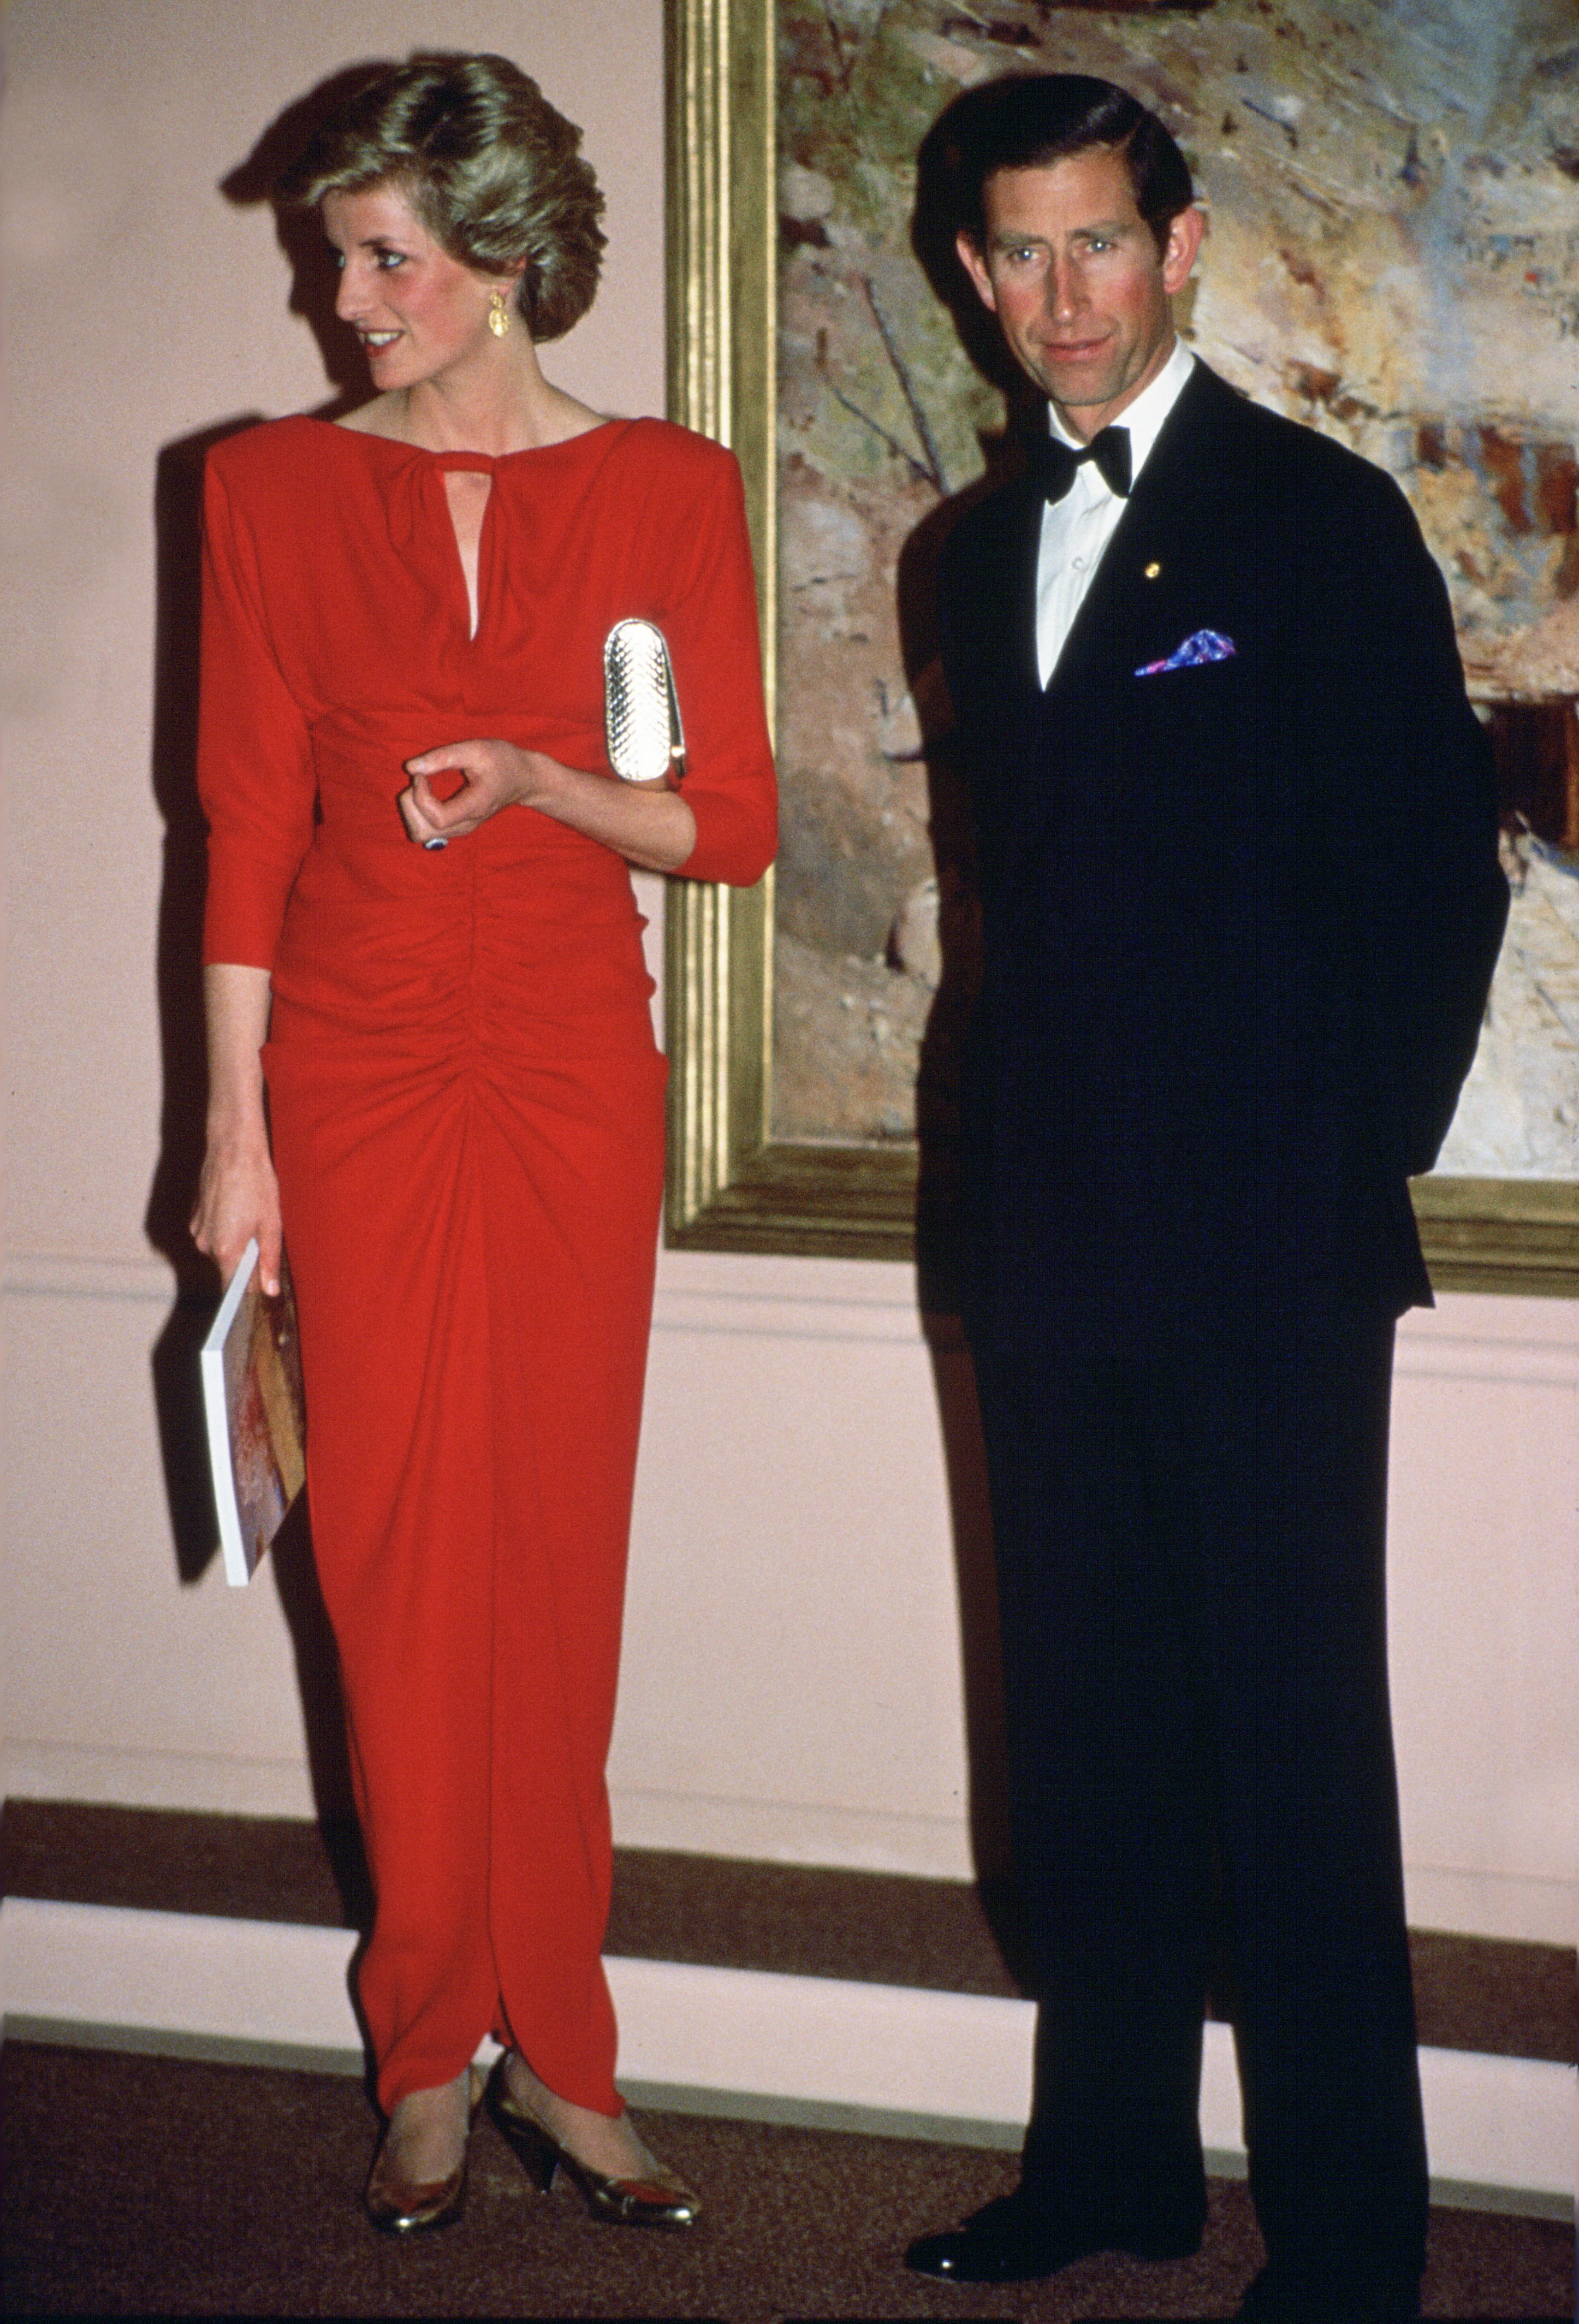 Princess Di's sleek red Bruce Oldfield gown that she donned for a trip to Australia was a far cry from the floral and frilly dresses she had worn in her early days as a princess.